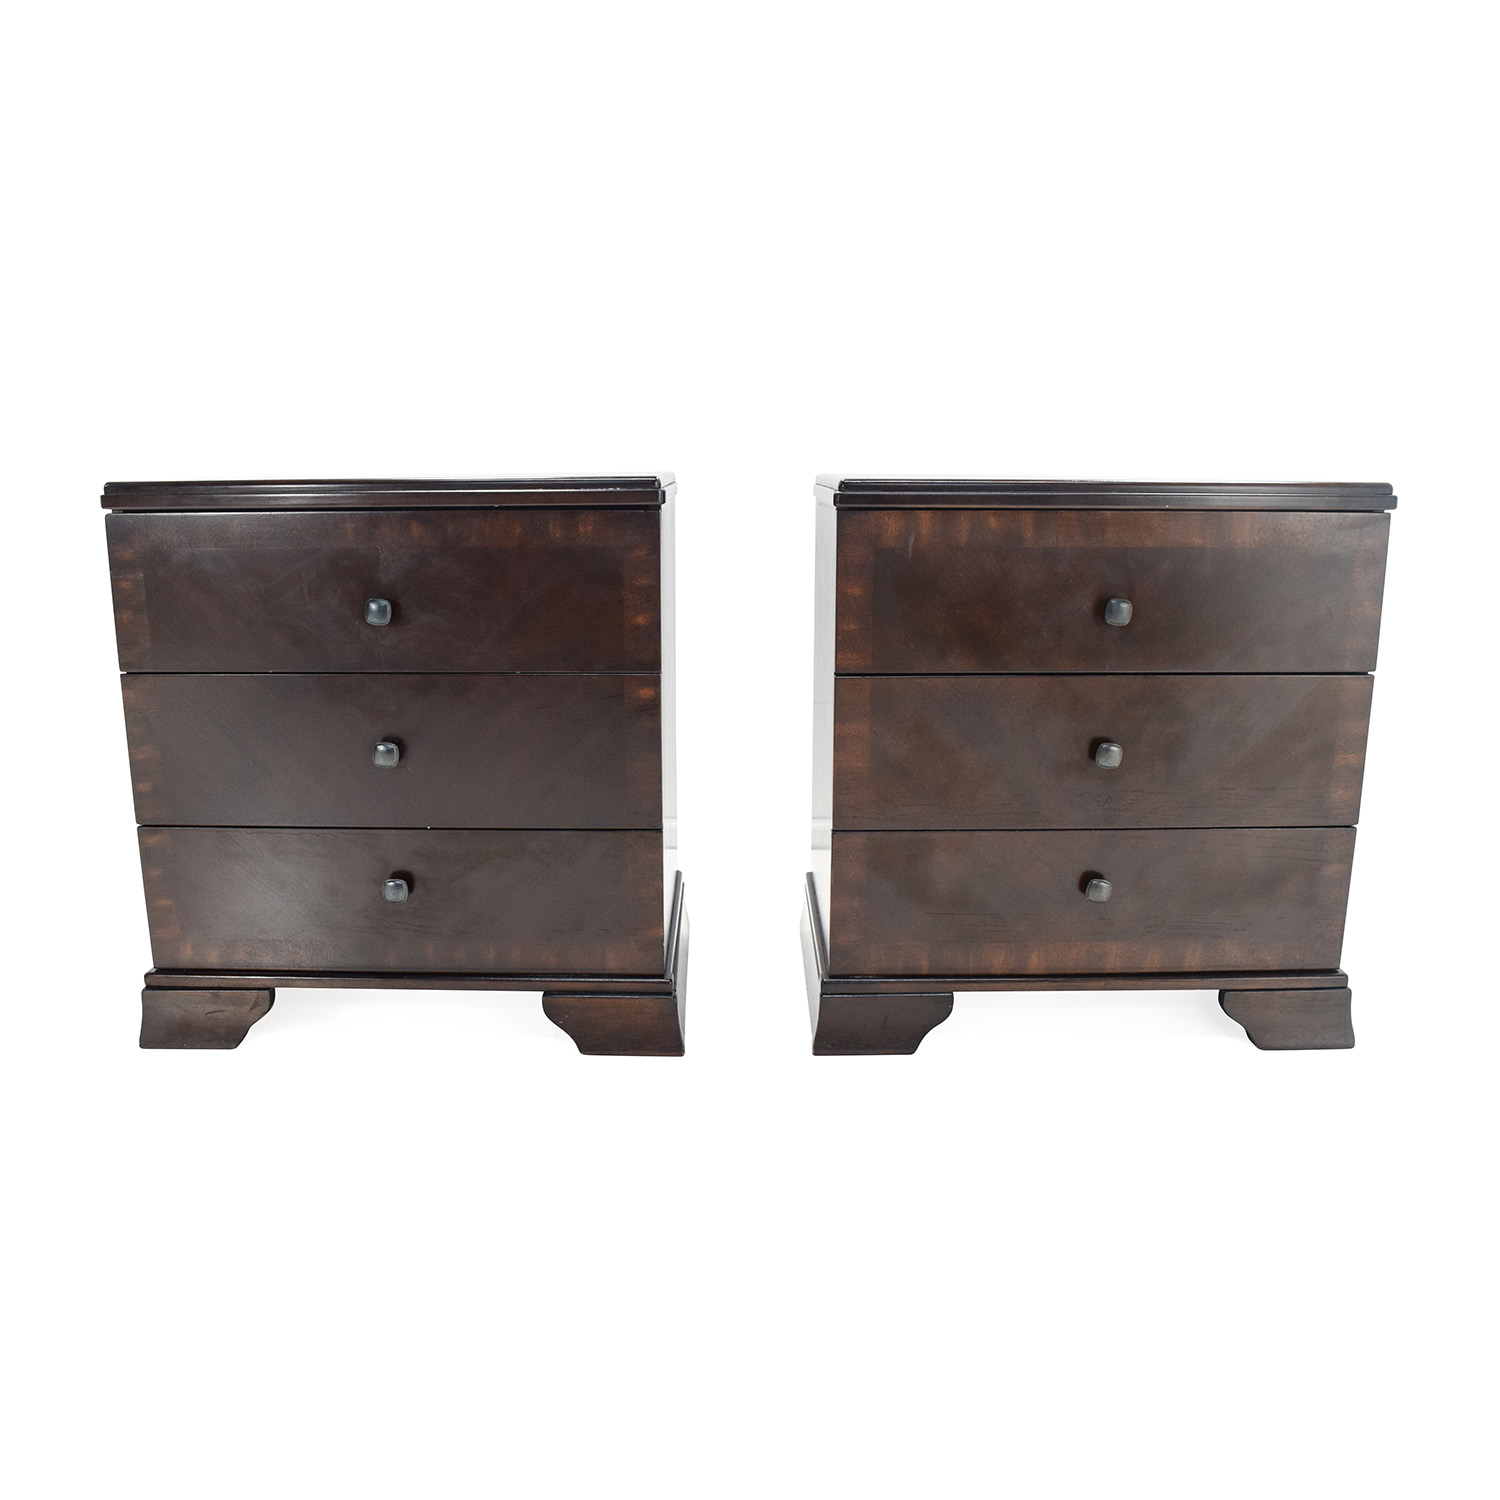 Pair of Nightstands / Tables